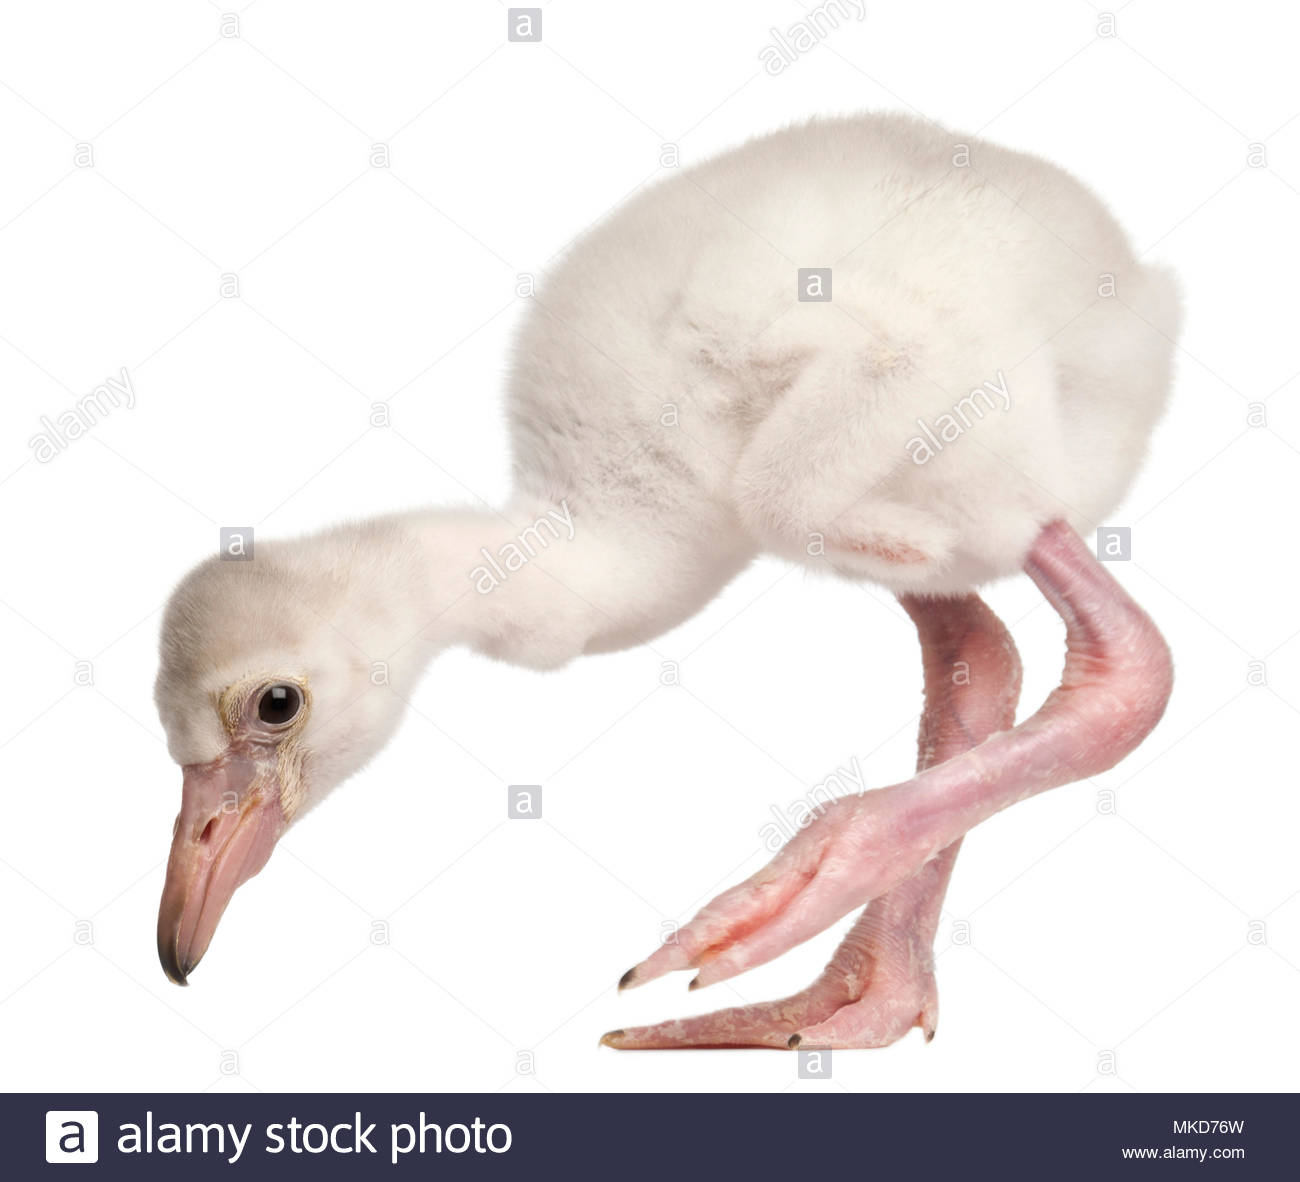 Greater Flamingo, (Phoenicopterus roseus), 14 days old, in front of white background, Mulhouse Zoological and Botanical Park, France Stock Photo